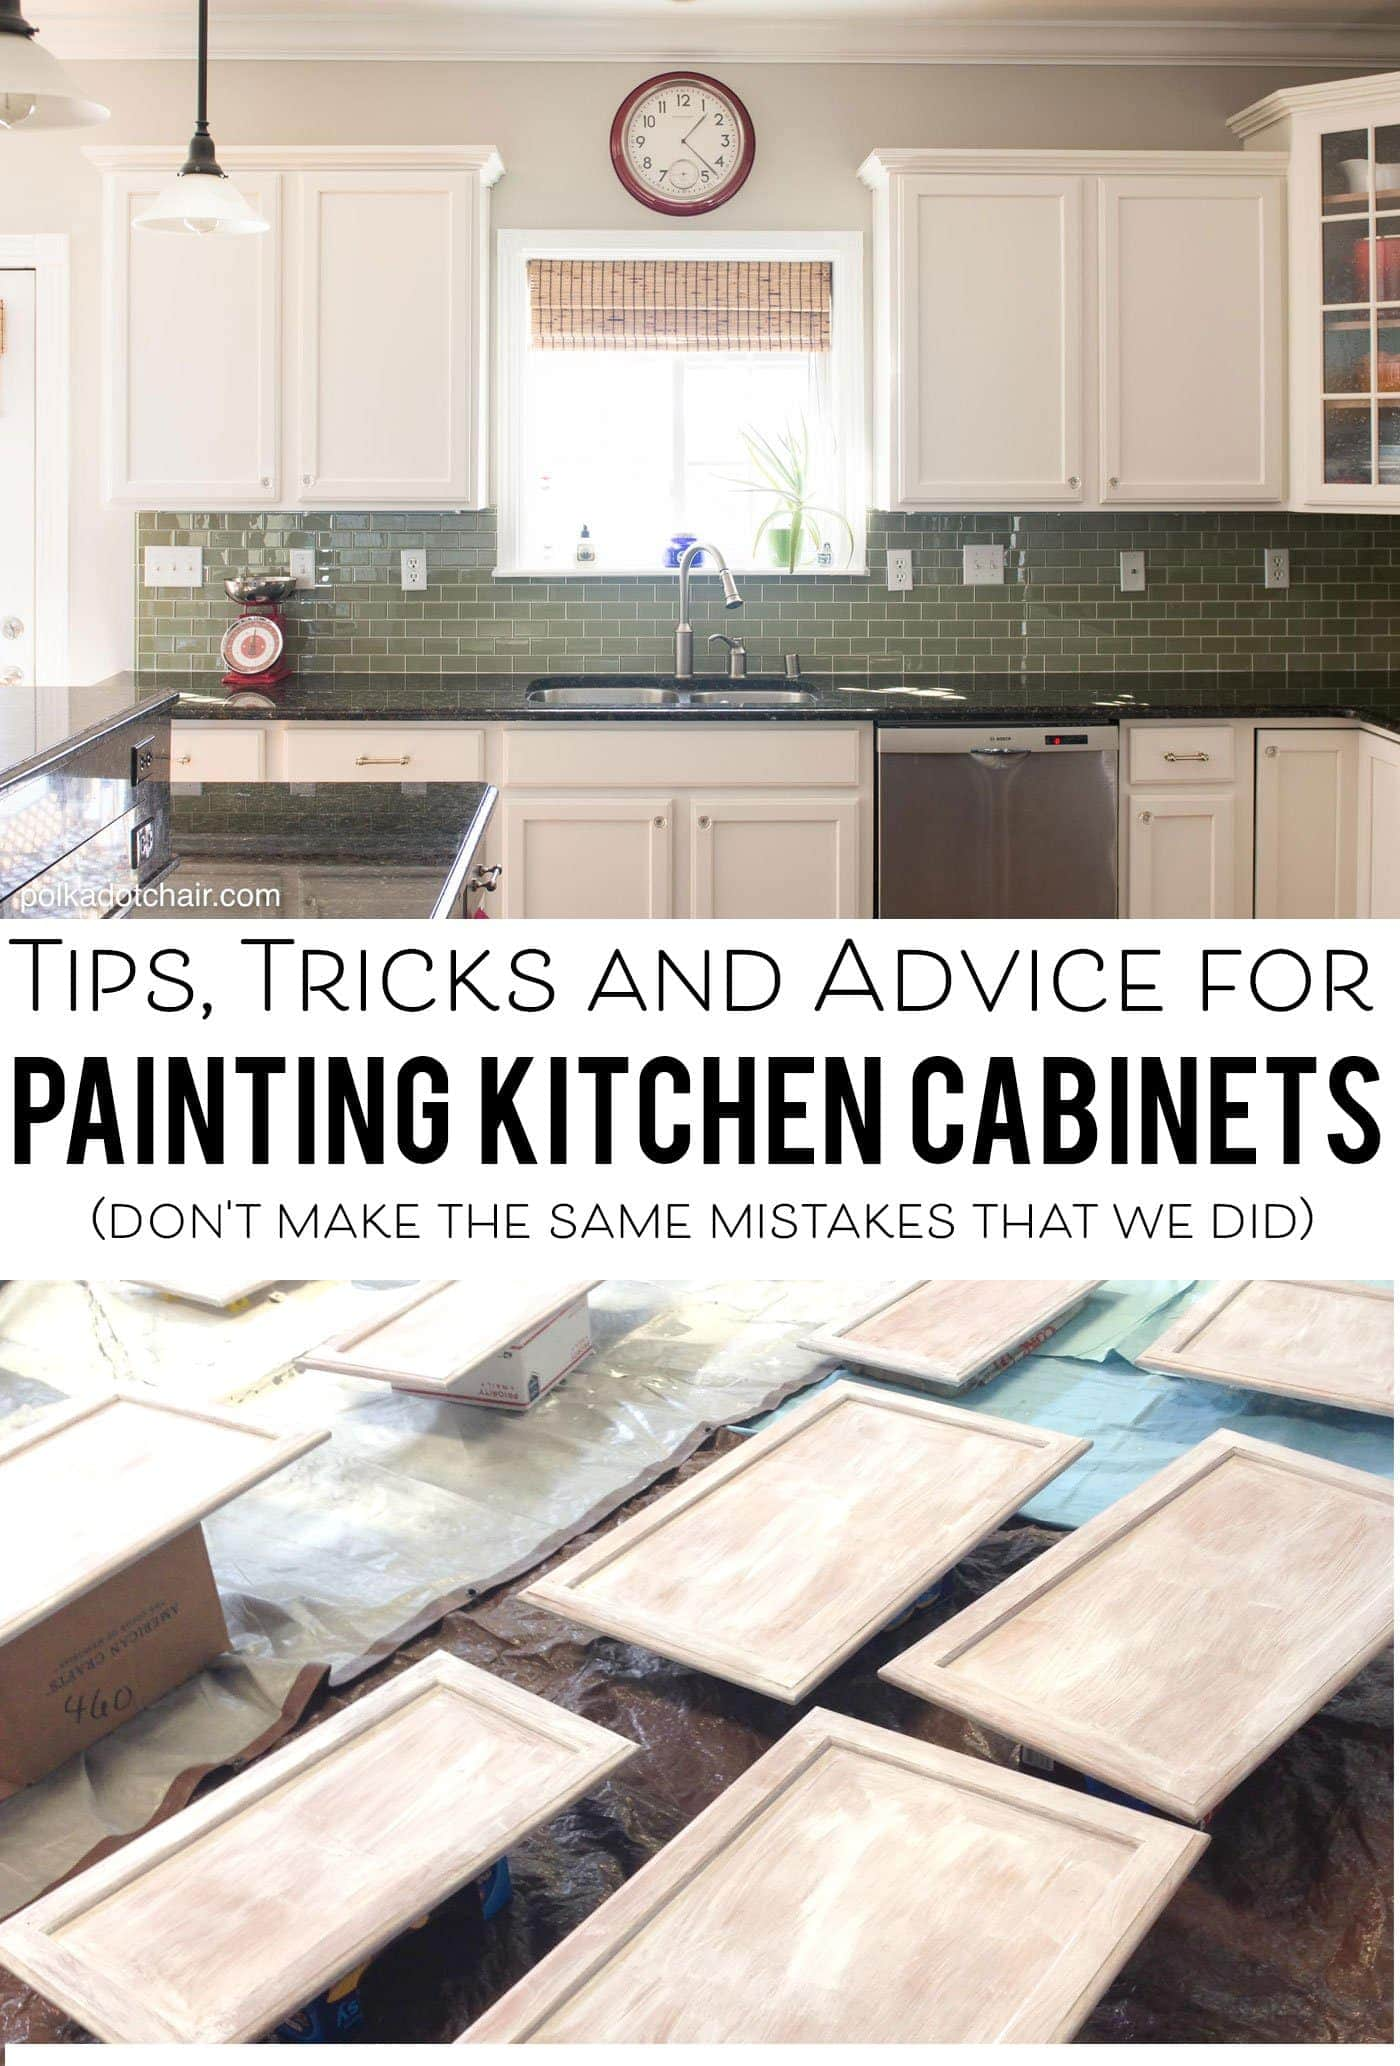 Tips for painting kitchen cabinets the polka dot chair for Kitchen cabinets painters